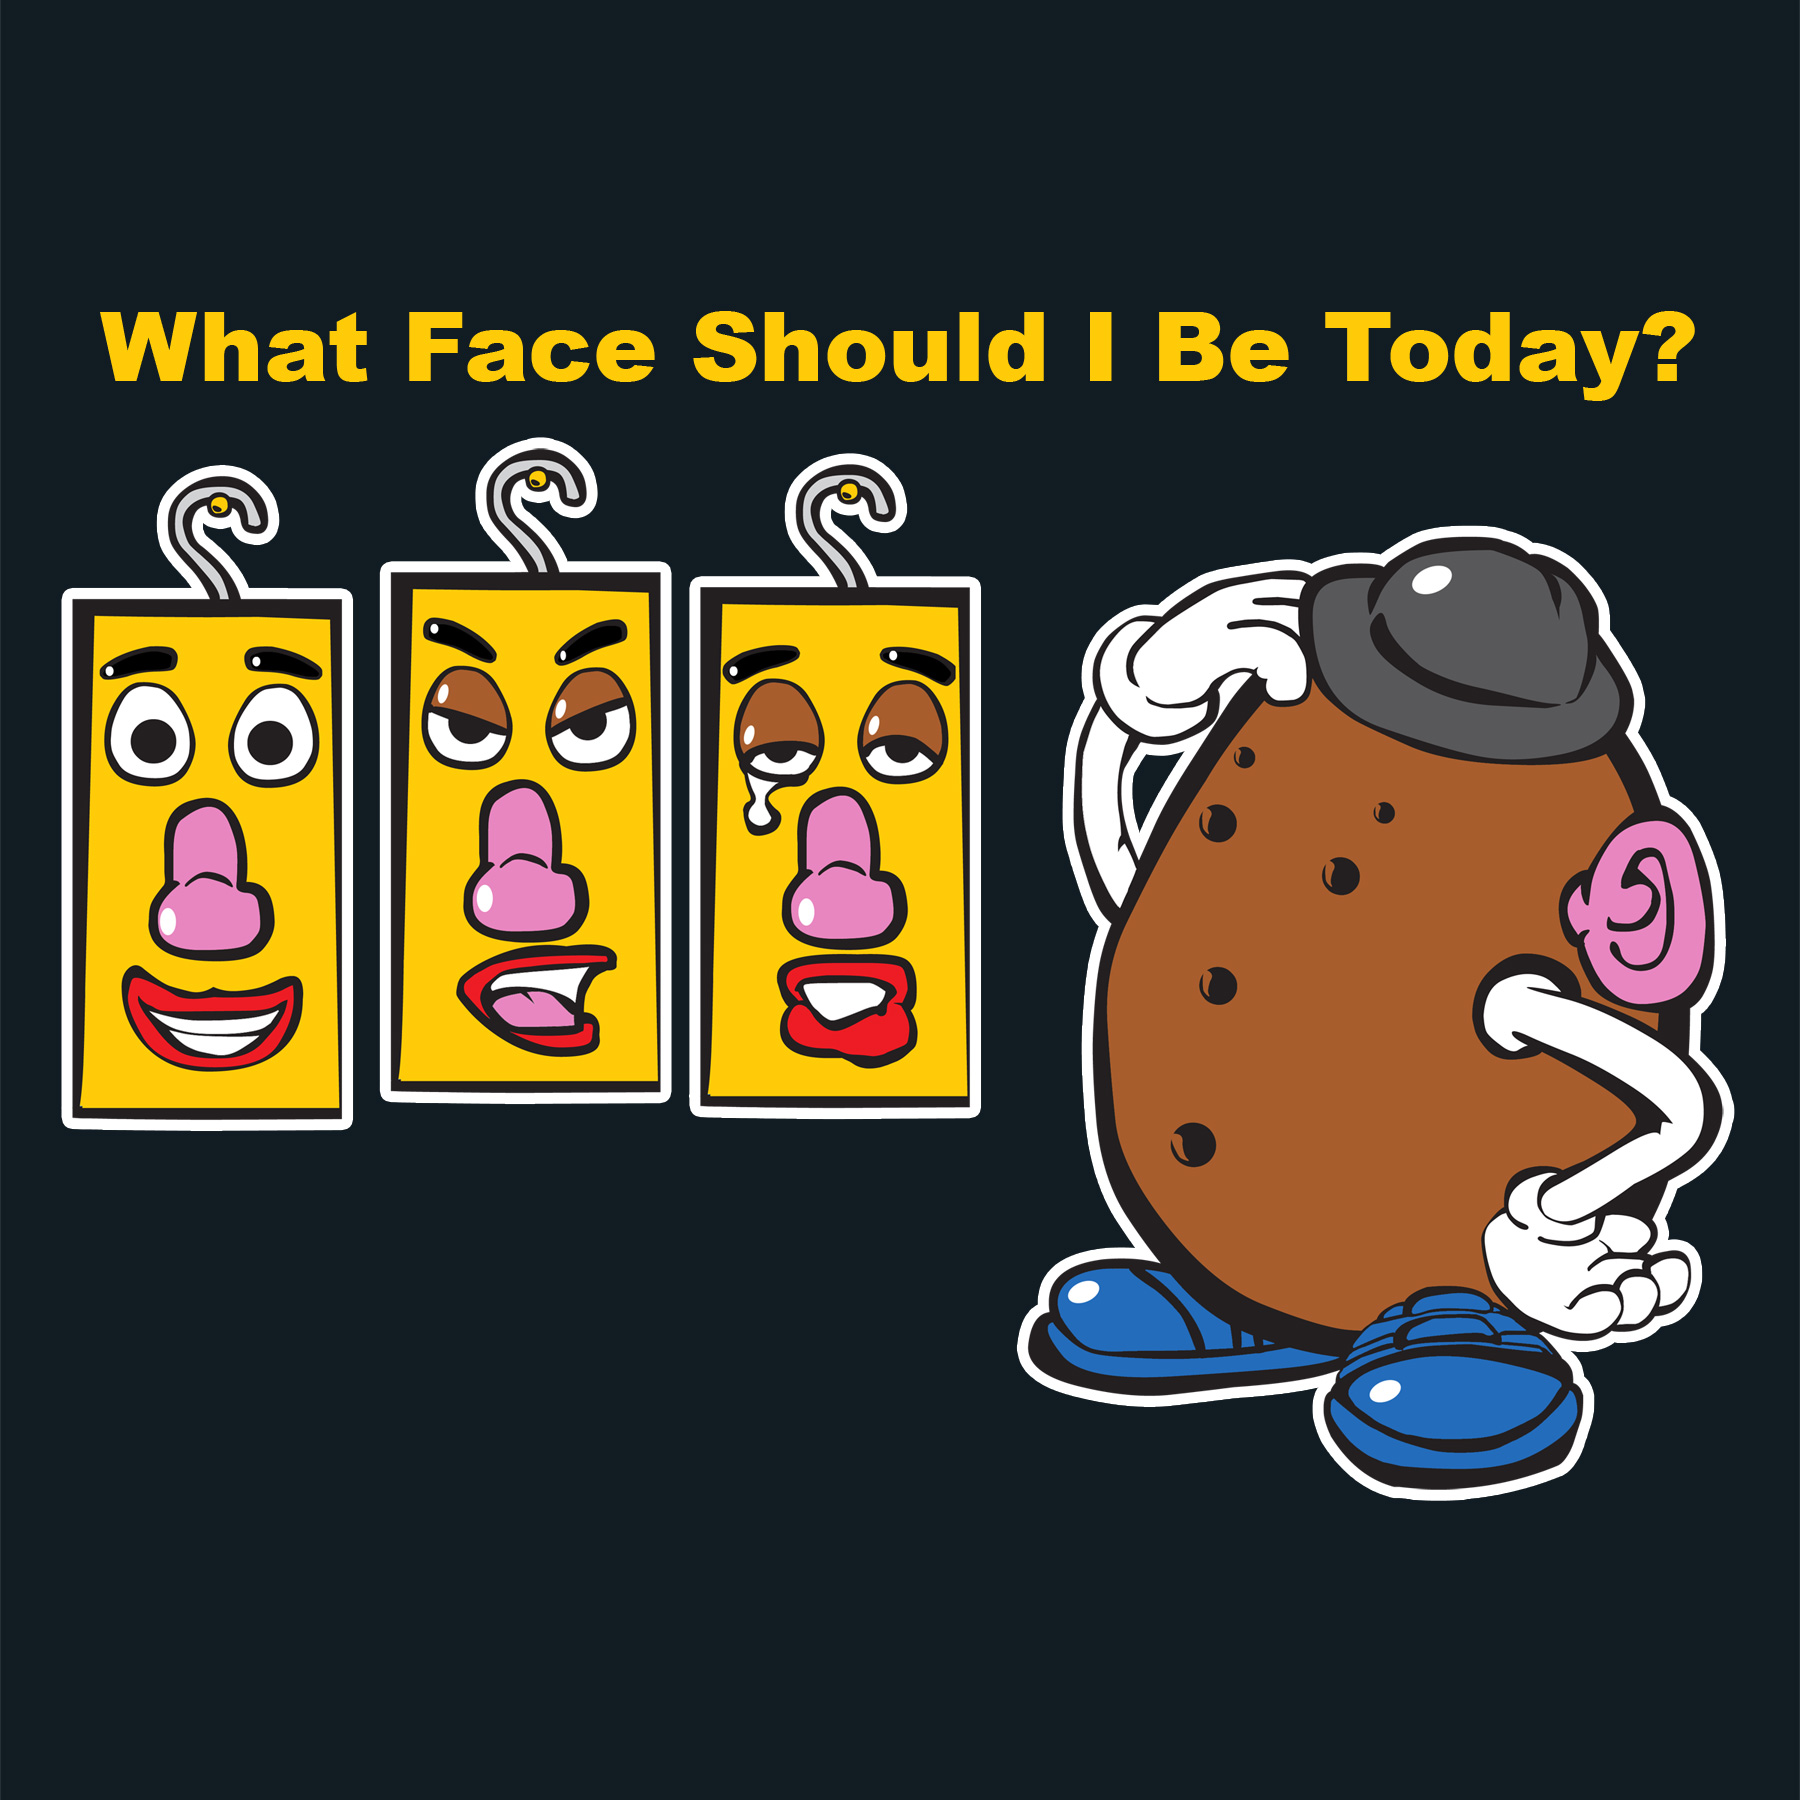 What Face Should I Be Today?